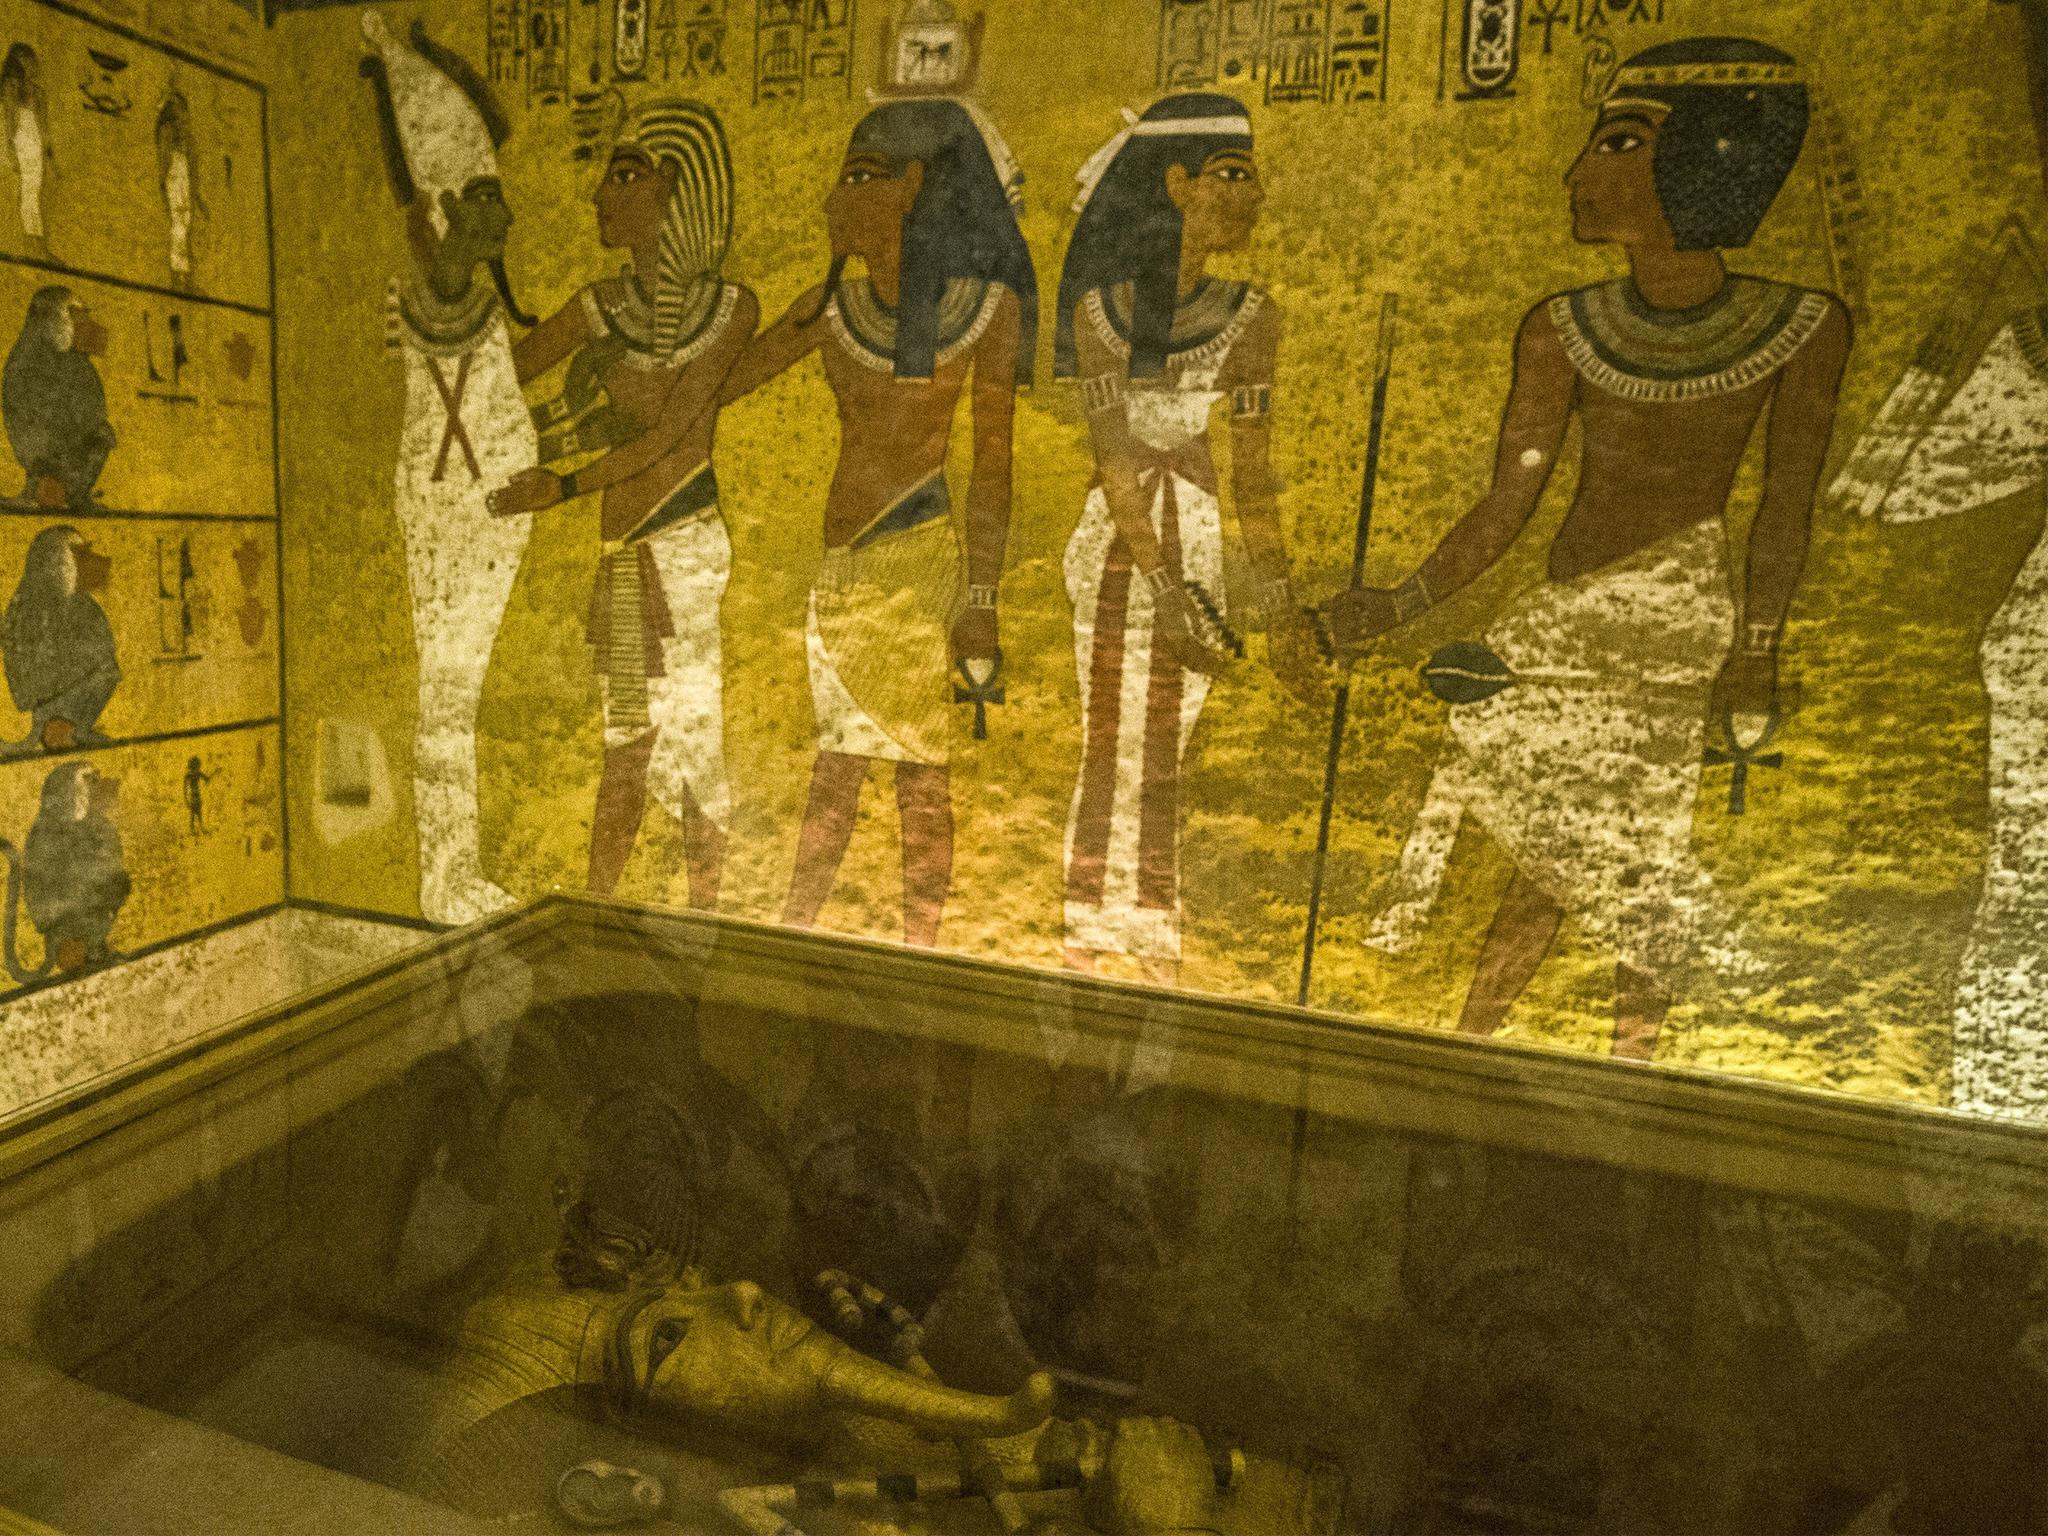 Tutankhamun 'secret burial chamber' does not exist, researchers find